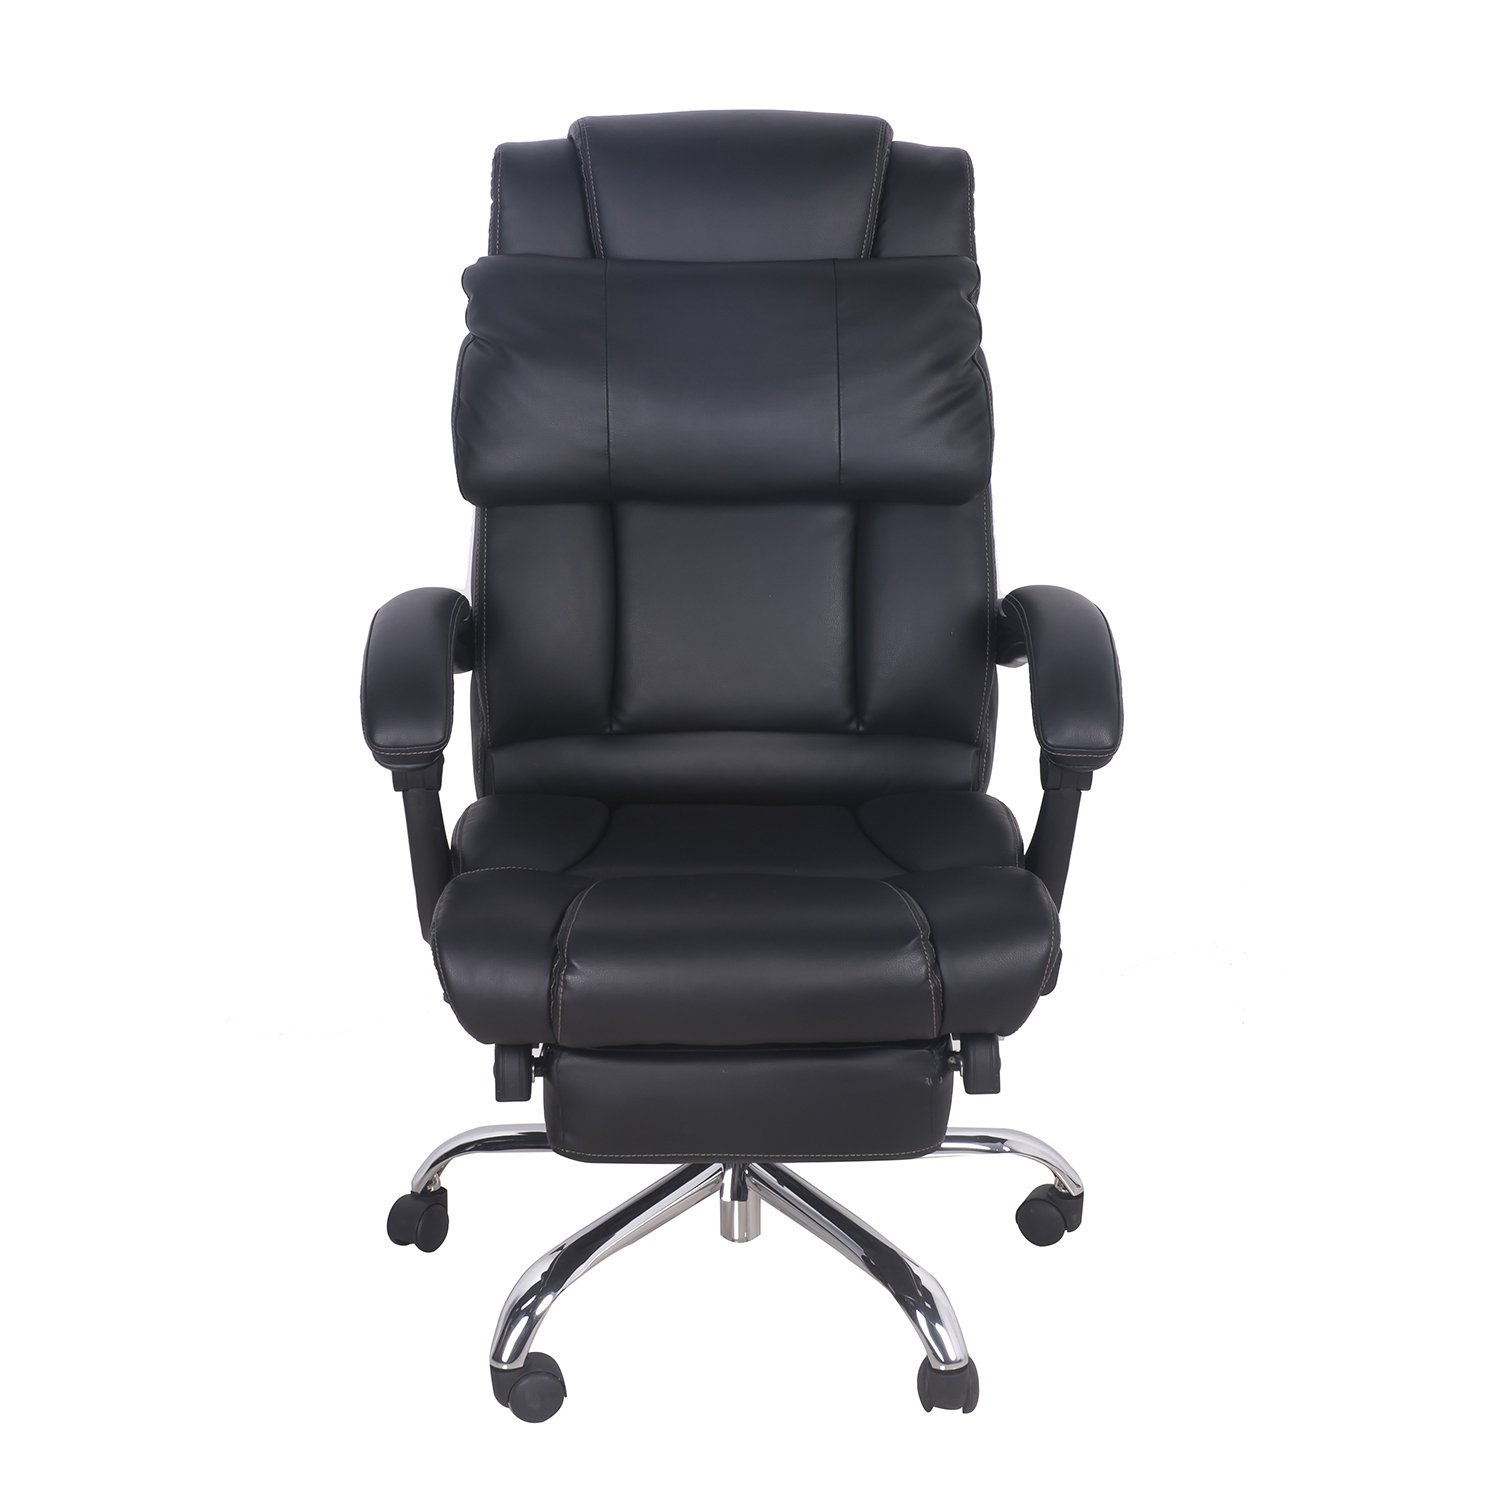 Top 10 Reclining fice Chairs Reviewed